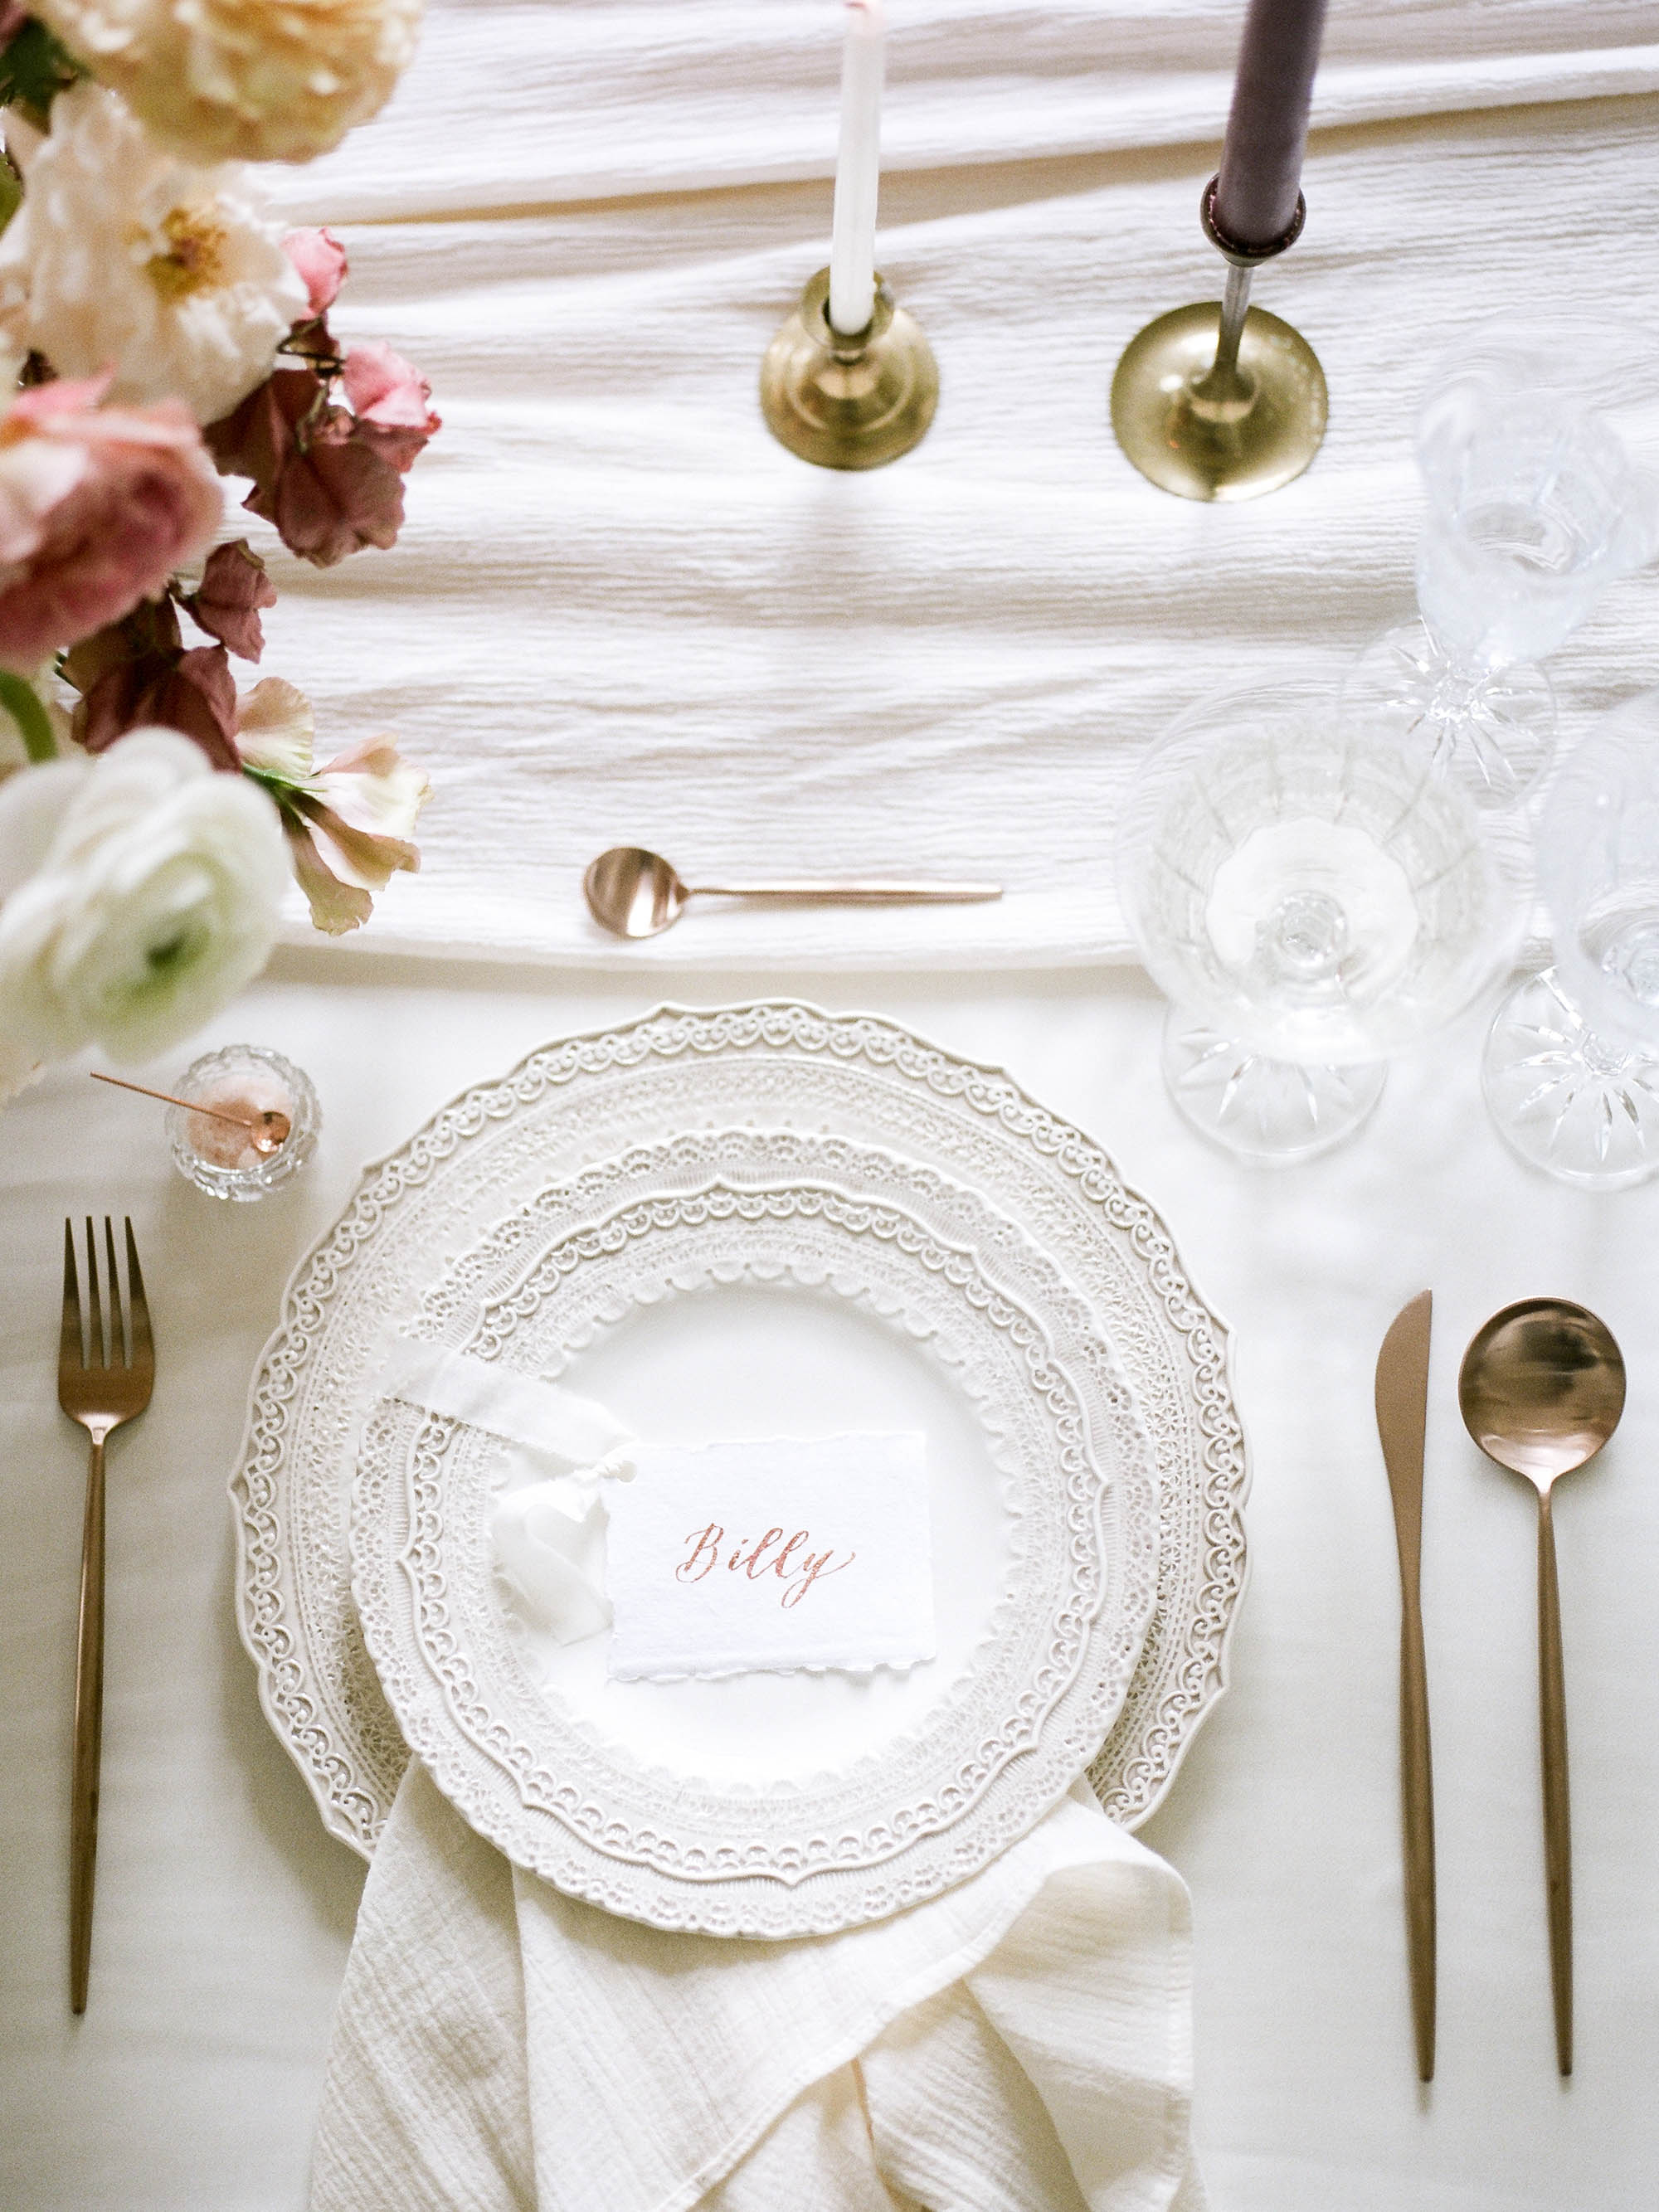 Wedding Place Setting_OdeToJoyFlowers-25_Christine Gosch_Dreams and Nostalgia.jpg